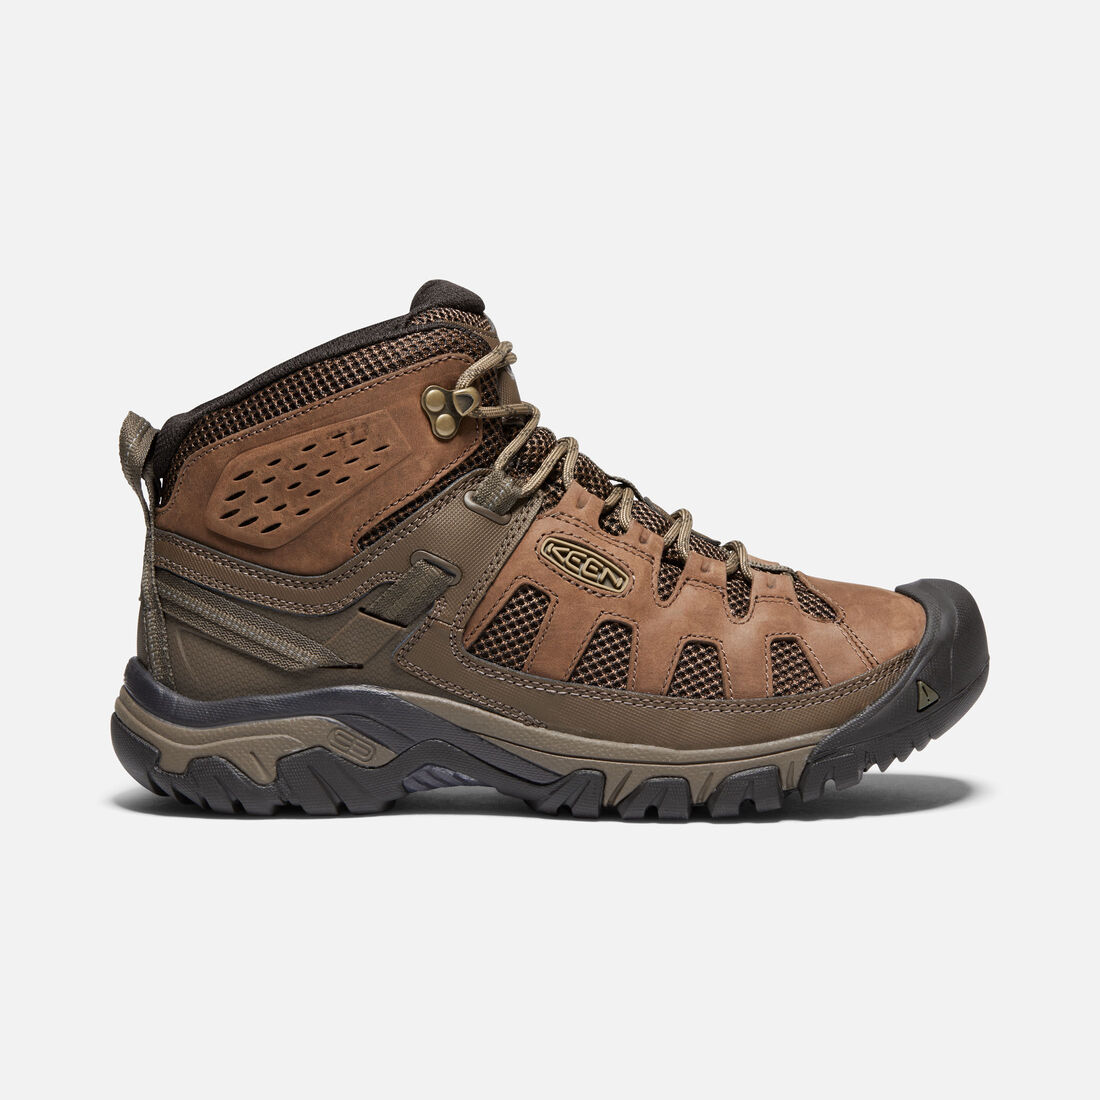 Men's TARGHEE VENT MID in CUBAN/ANTIQUE BRONZE - large view.